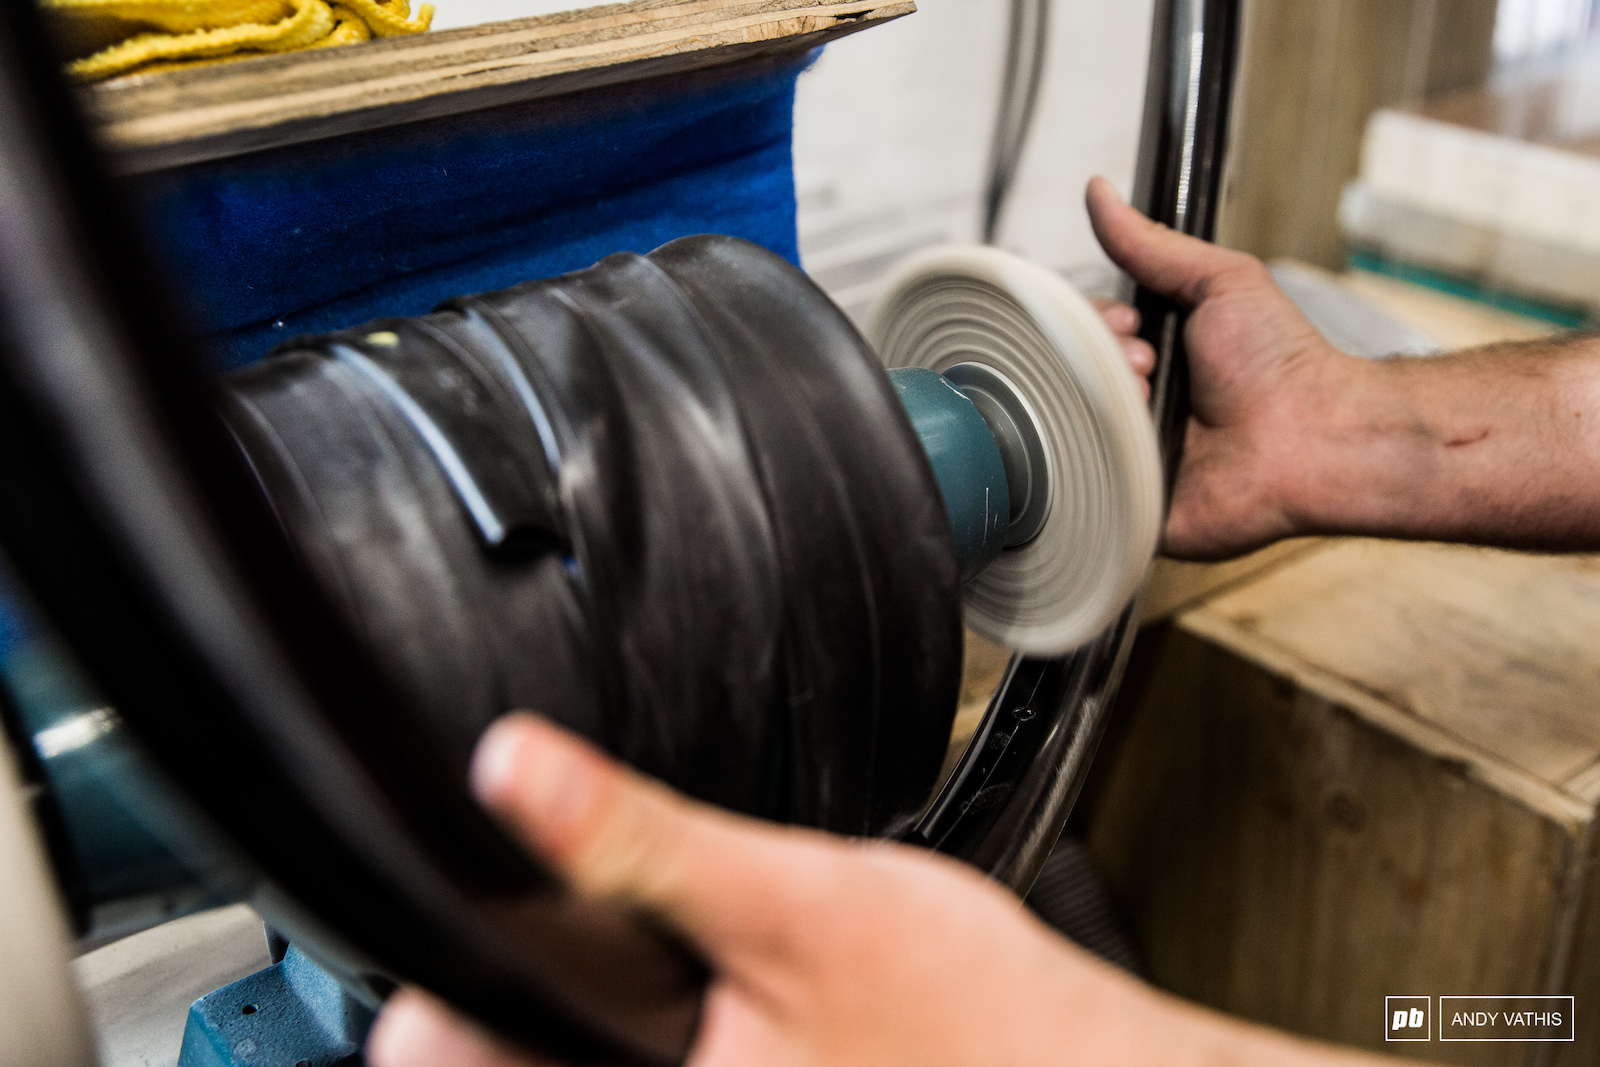 The only finish the rims get after being removed from the molds are a good buffing to remove any leftover materials. That s it. no paint no nothing. It s way more cost effective this way and much better for the environment with the absence of harmful chemicals that come with paint and prep.